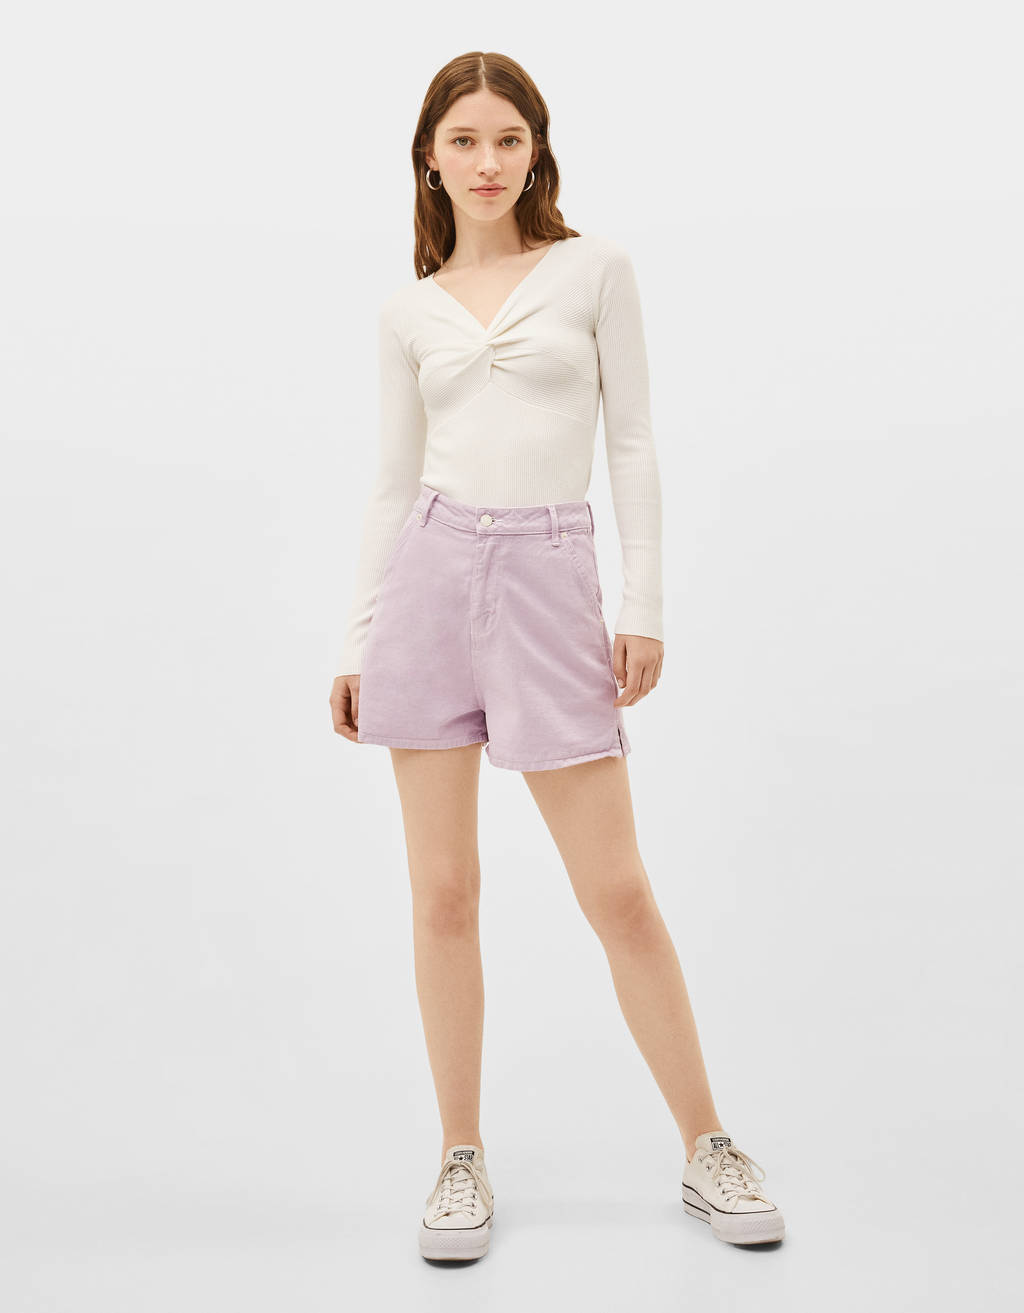 High-rise Bermuda shorts